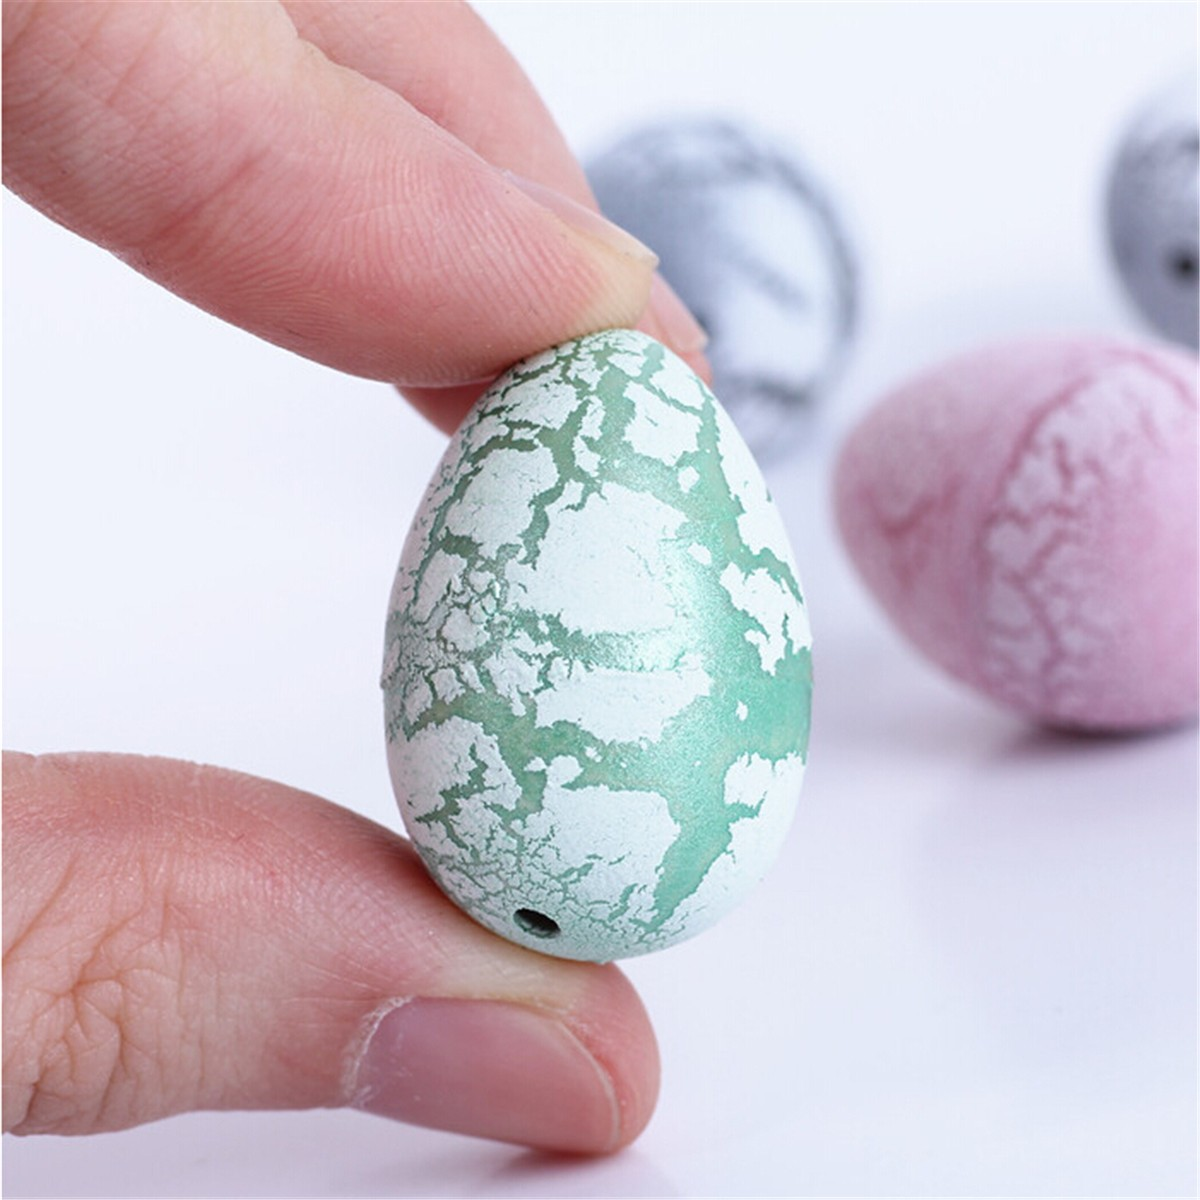 New 1 PC Hatching Growing Dinosaur Dino Eggs Add Water Magic Cute Children Kids Toy Gift<br><br>Aliexpress